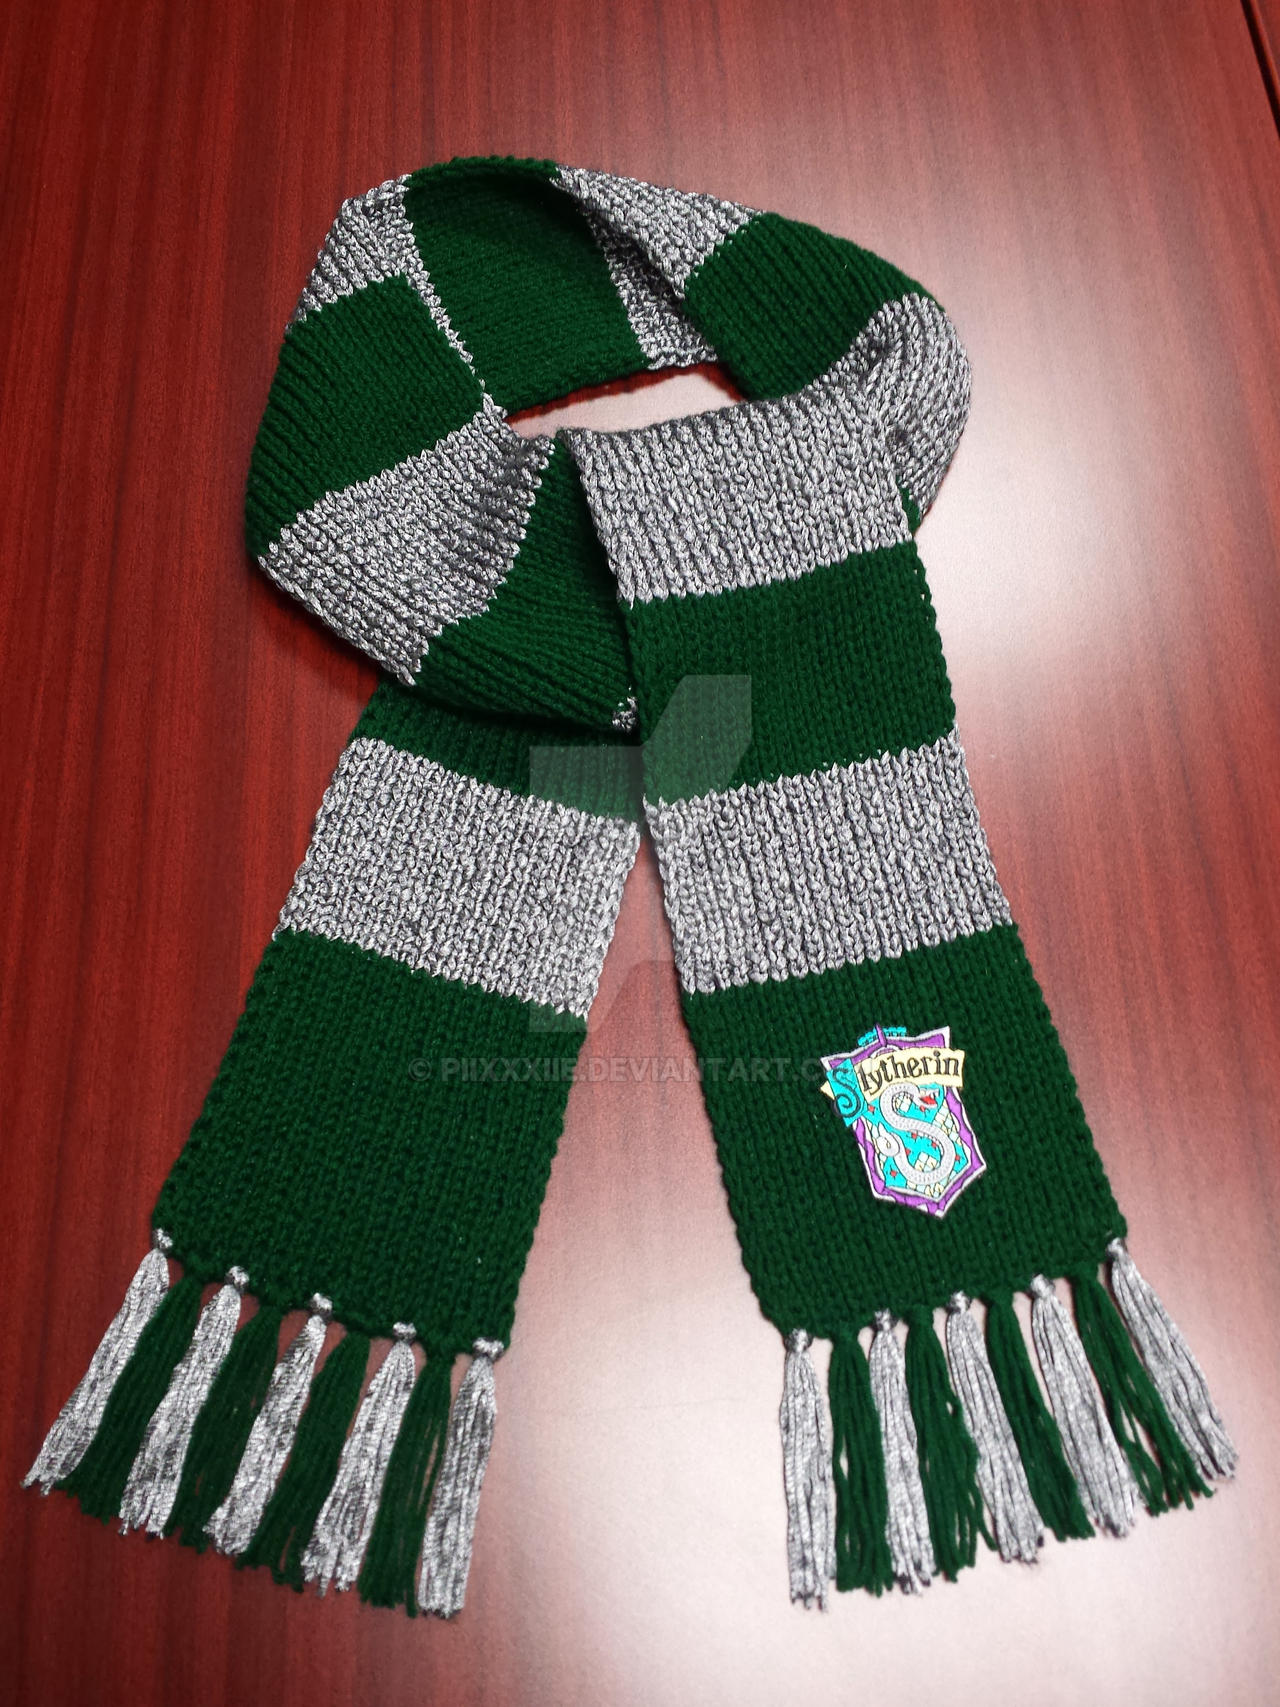 Harry Potter Scarf Knitting Pattern Slytherin : Slytherin Scarf II by PiixXxiiE on DeviantArt